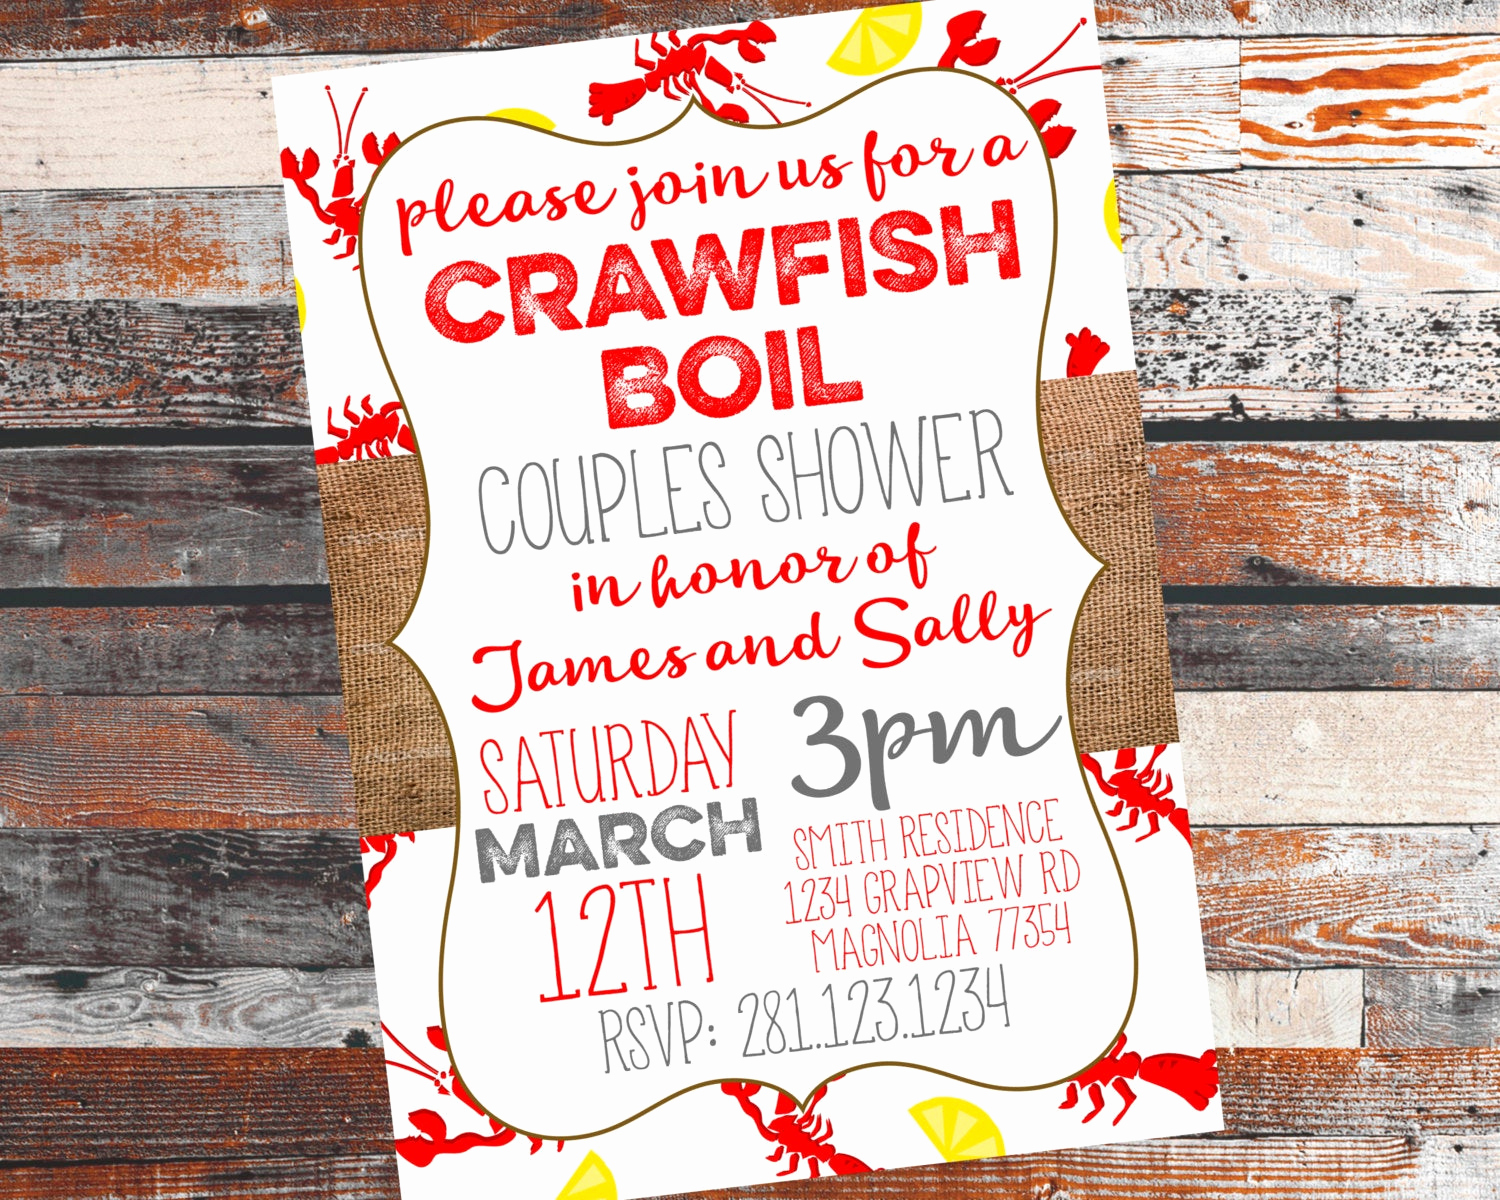 Couples Shower Invitation Templates Free Lovely Crawfish Boil Invitation Couples Shower Invitation Crawfish